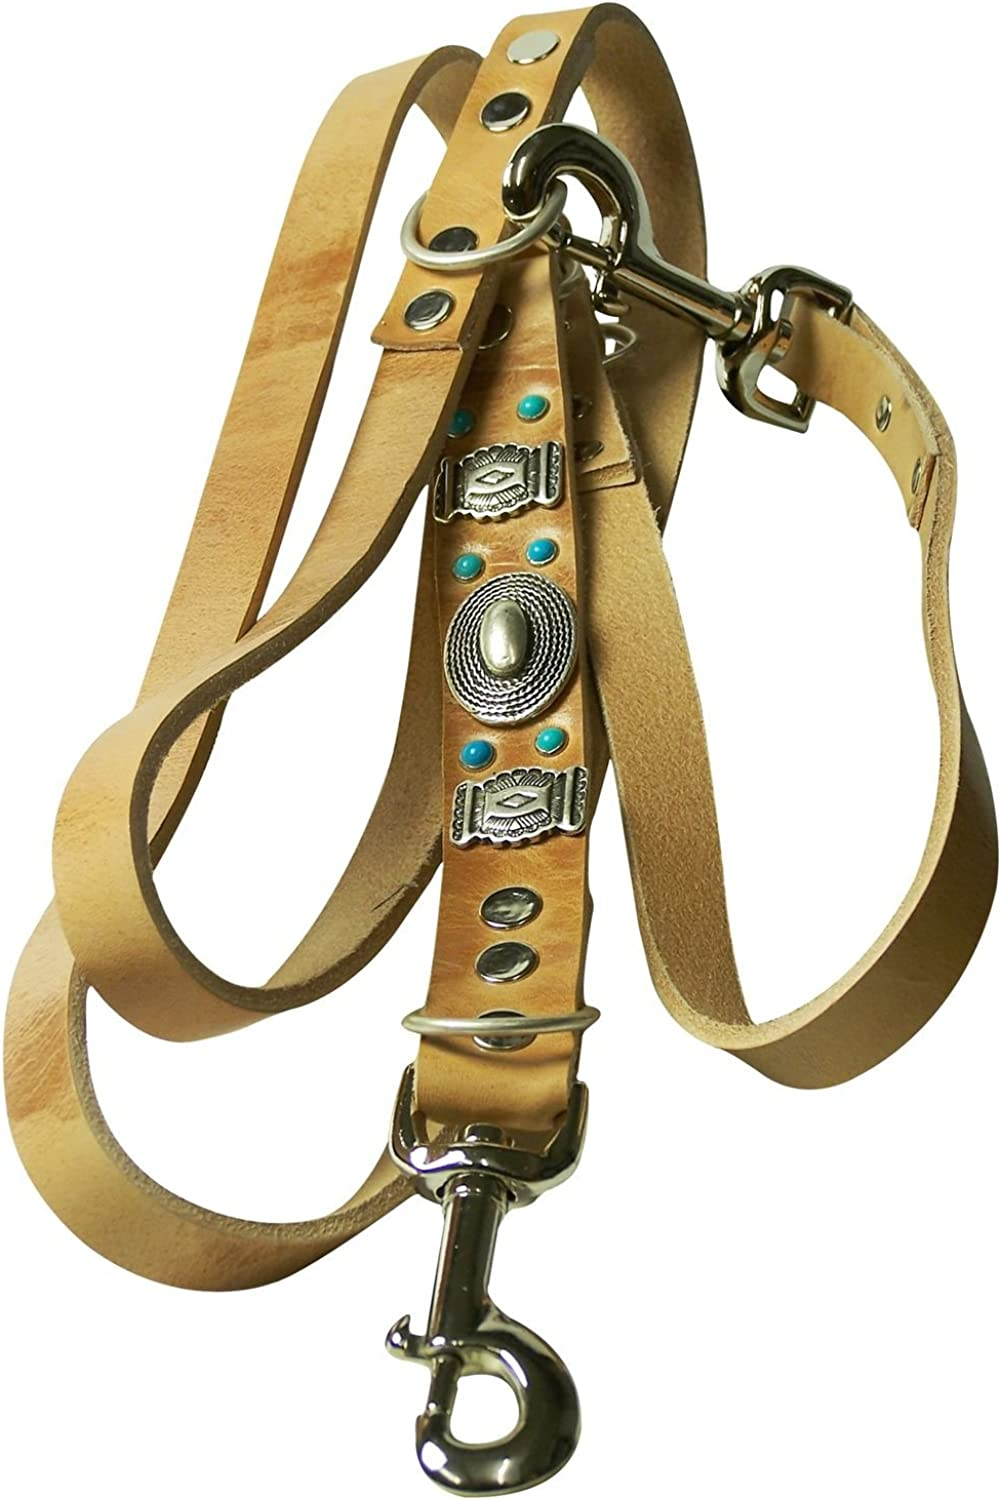 Fronhofer Natural leather dog leash 190cm (74'), Mexicoinspired, turquoise studs & concho, color Natural, Size One Size